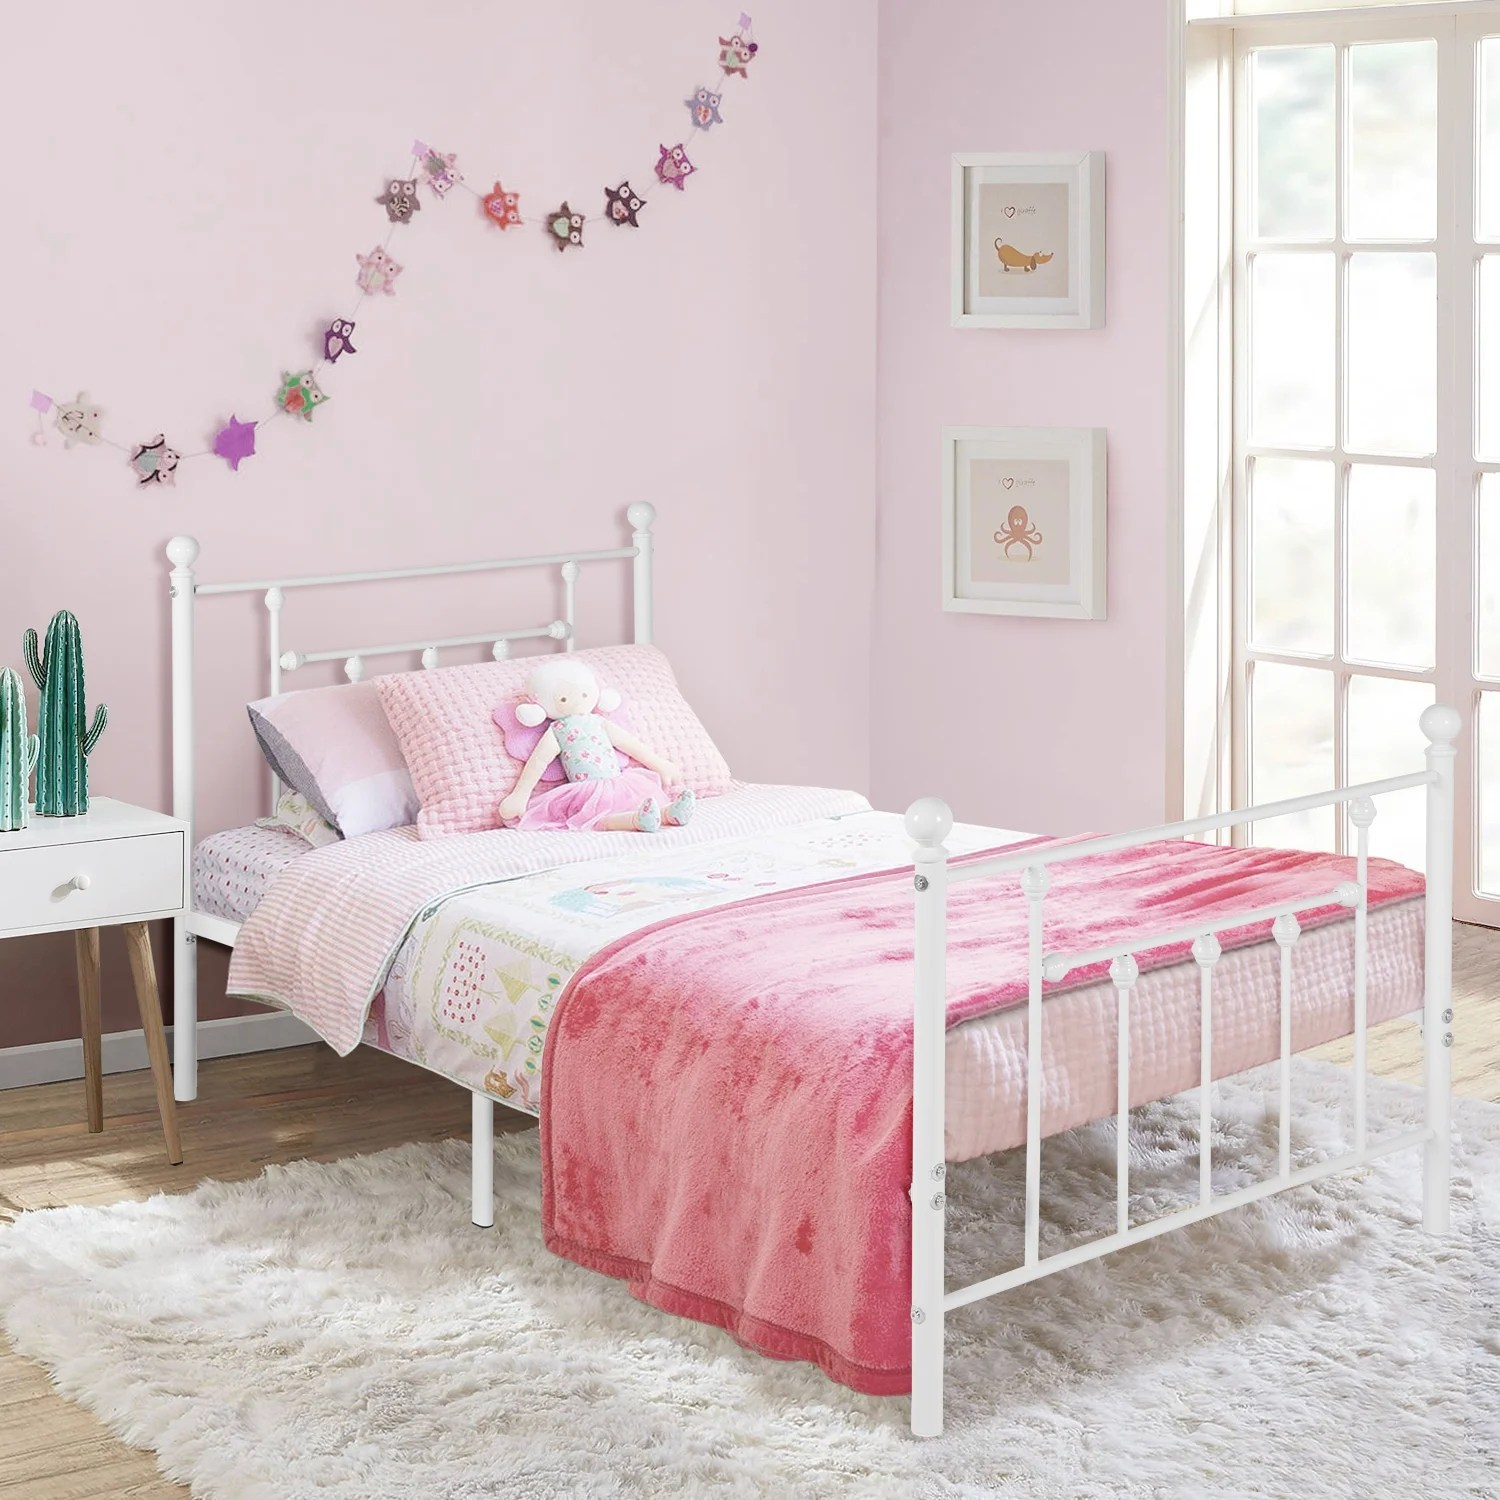 Vecelo Vintage Line Metal Bed Frame White Twin Full Queen Size 3 Opotion On Sale Overstock 29875431